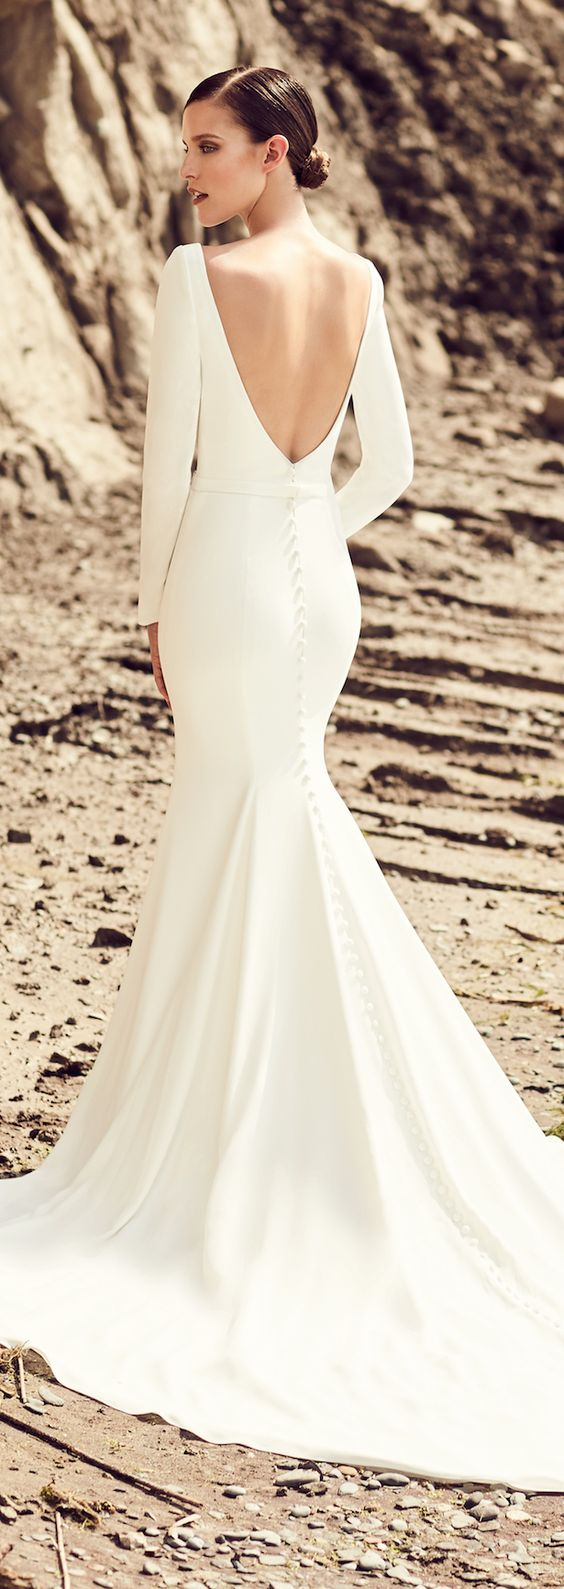 modern plain wedding dress with sleeves, a mermaid silhouette and a V cutout back